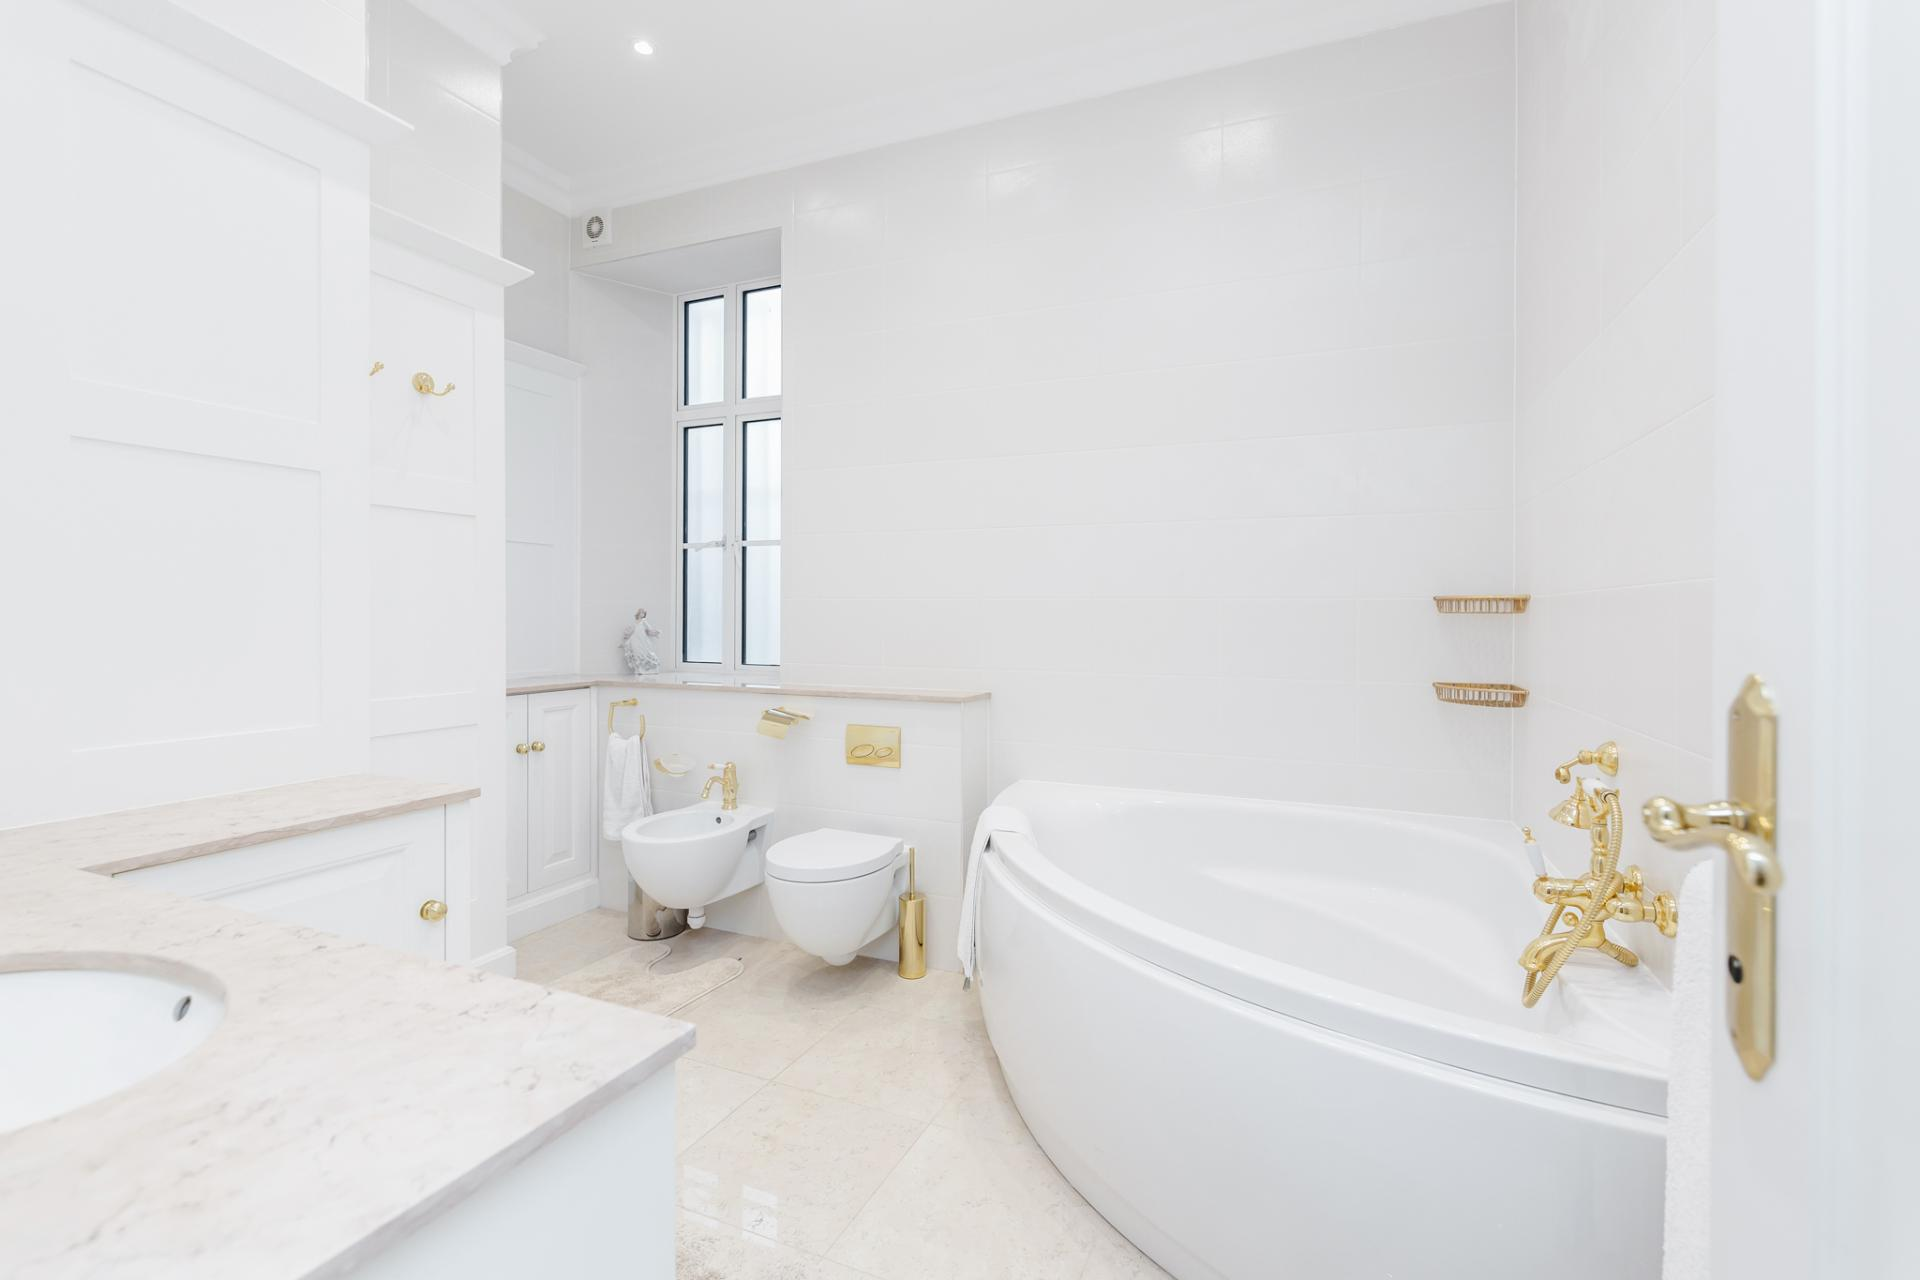 Bathtub at Grosvenor Square Apartment, Mayfair, London - Citybase Apartments